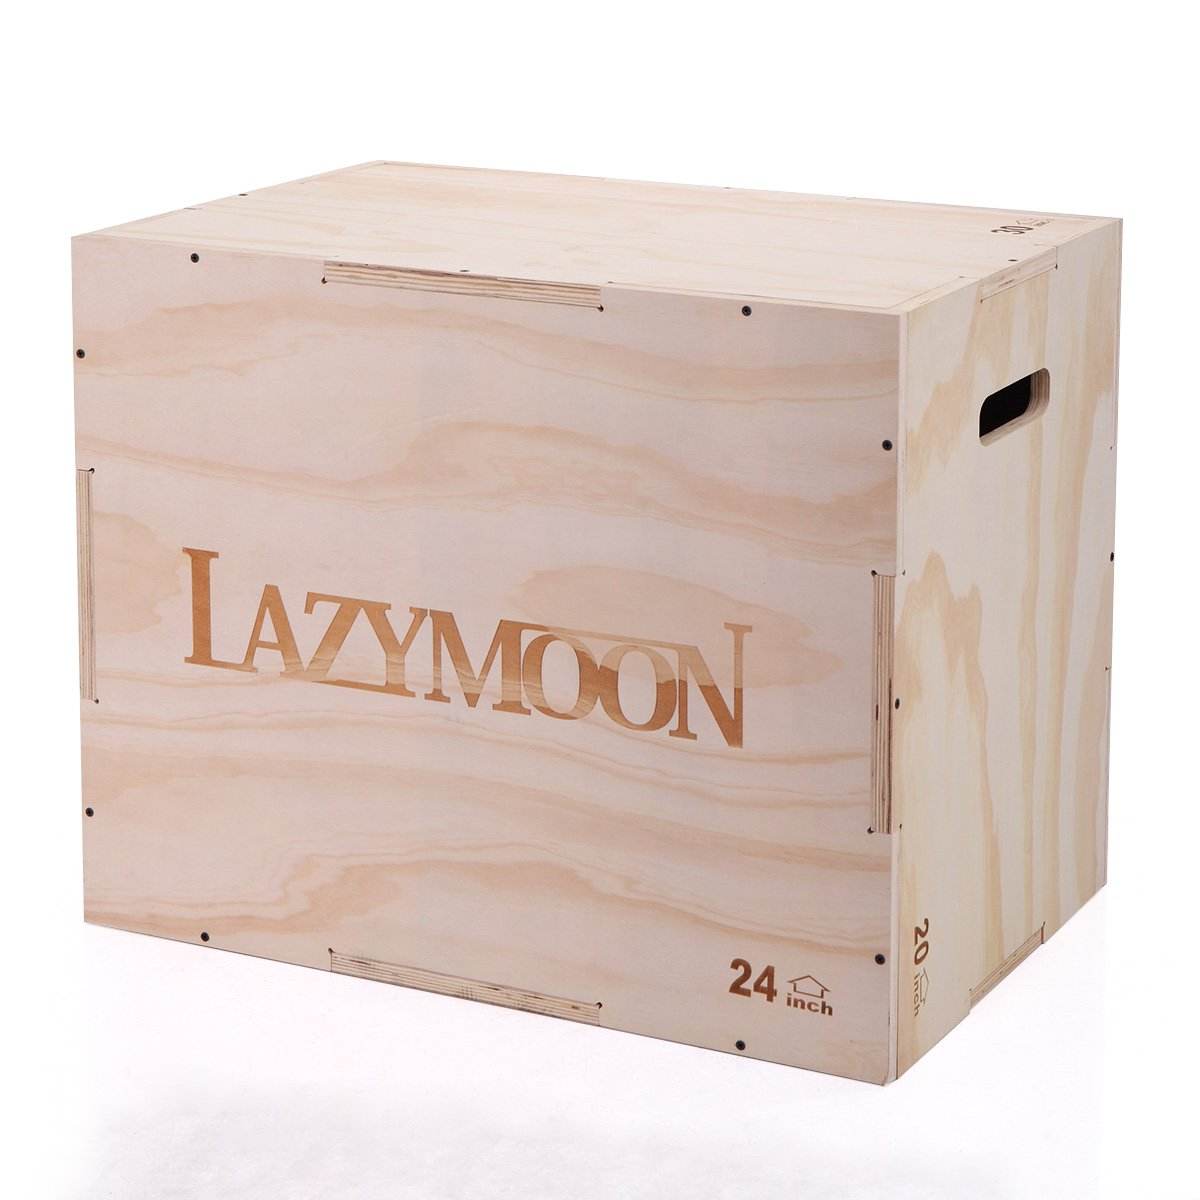 LAZYMOON 3 in 1 Wooden Plyo box 20x24x30 Inch CrossFit Plyometrics Jumping Trainer Box Platform